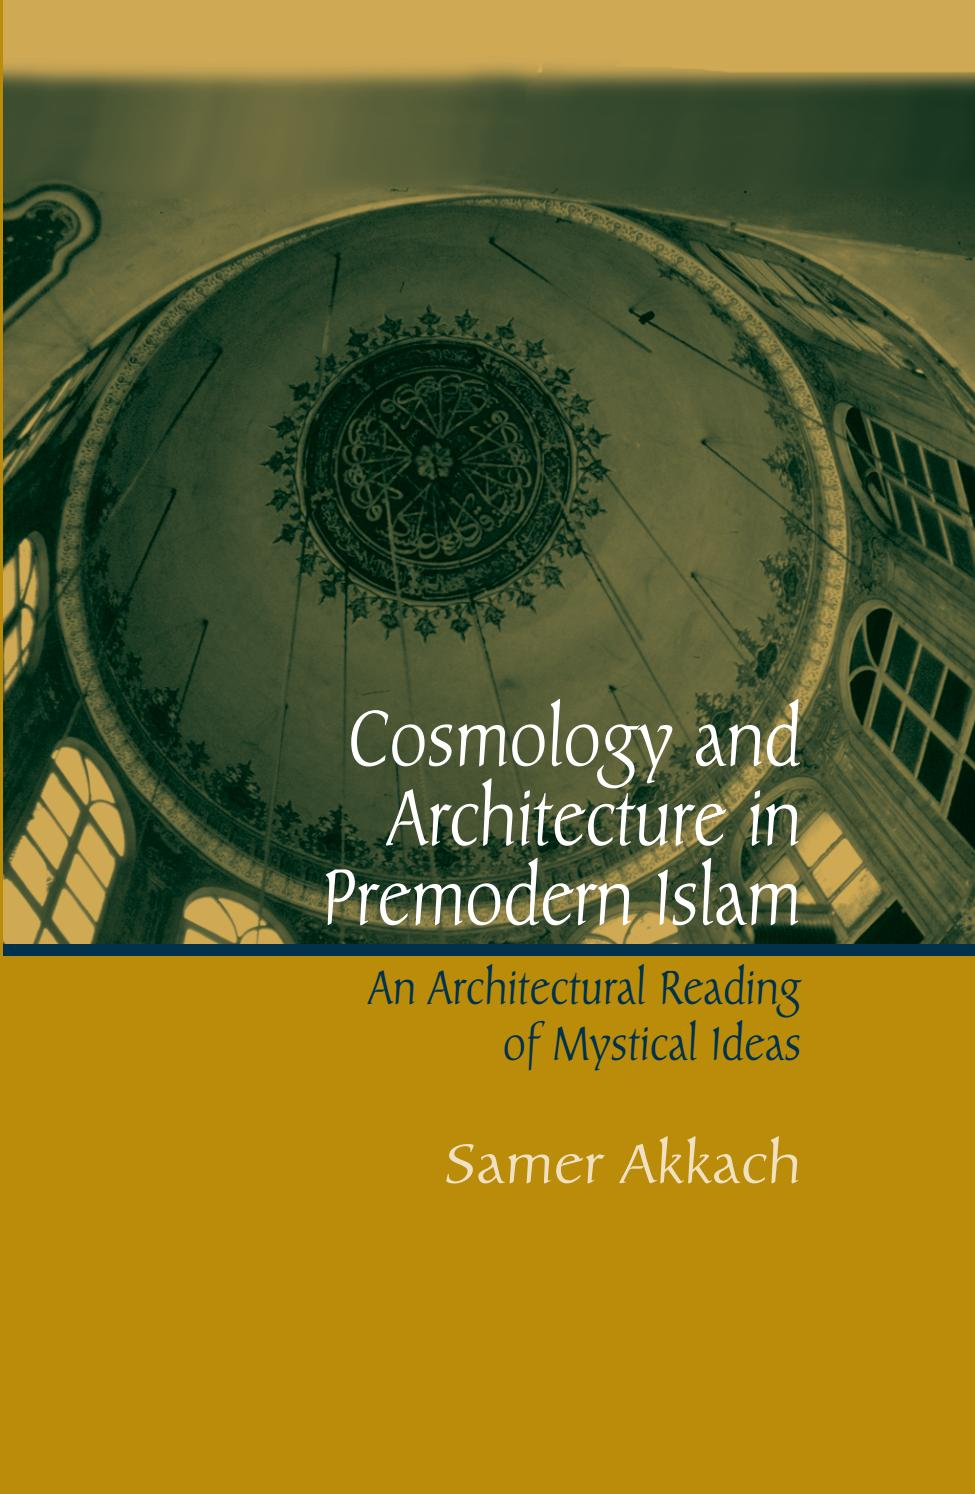 Cosmology and architecture in premodern islam by Samer